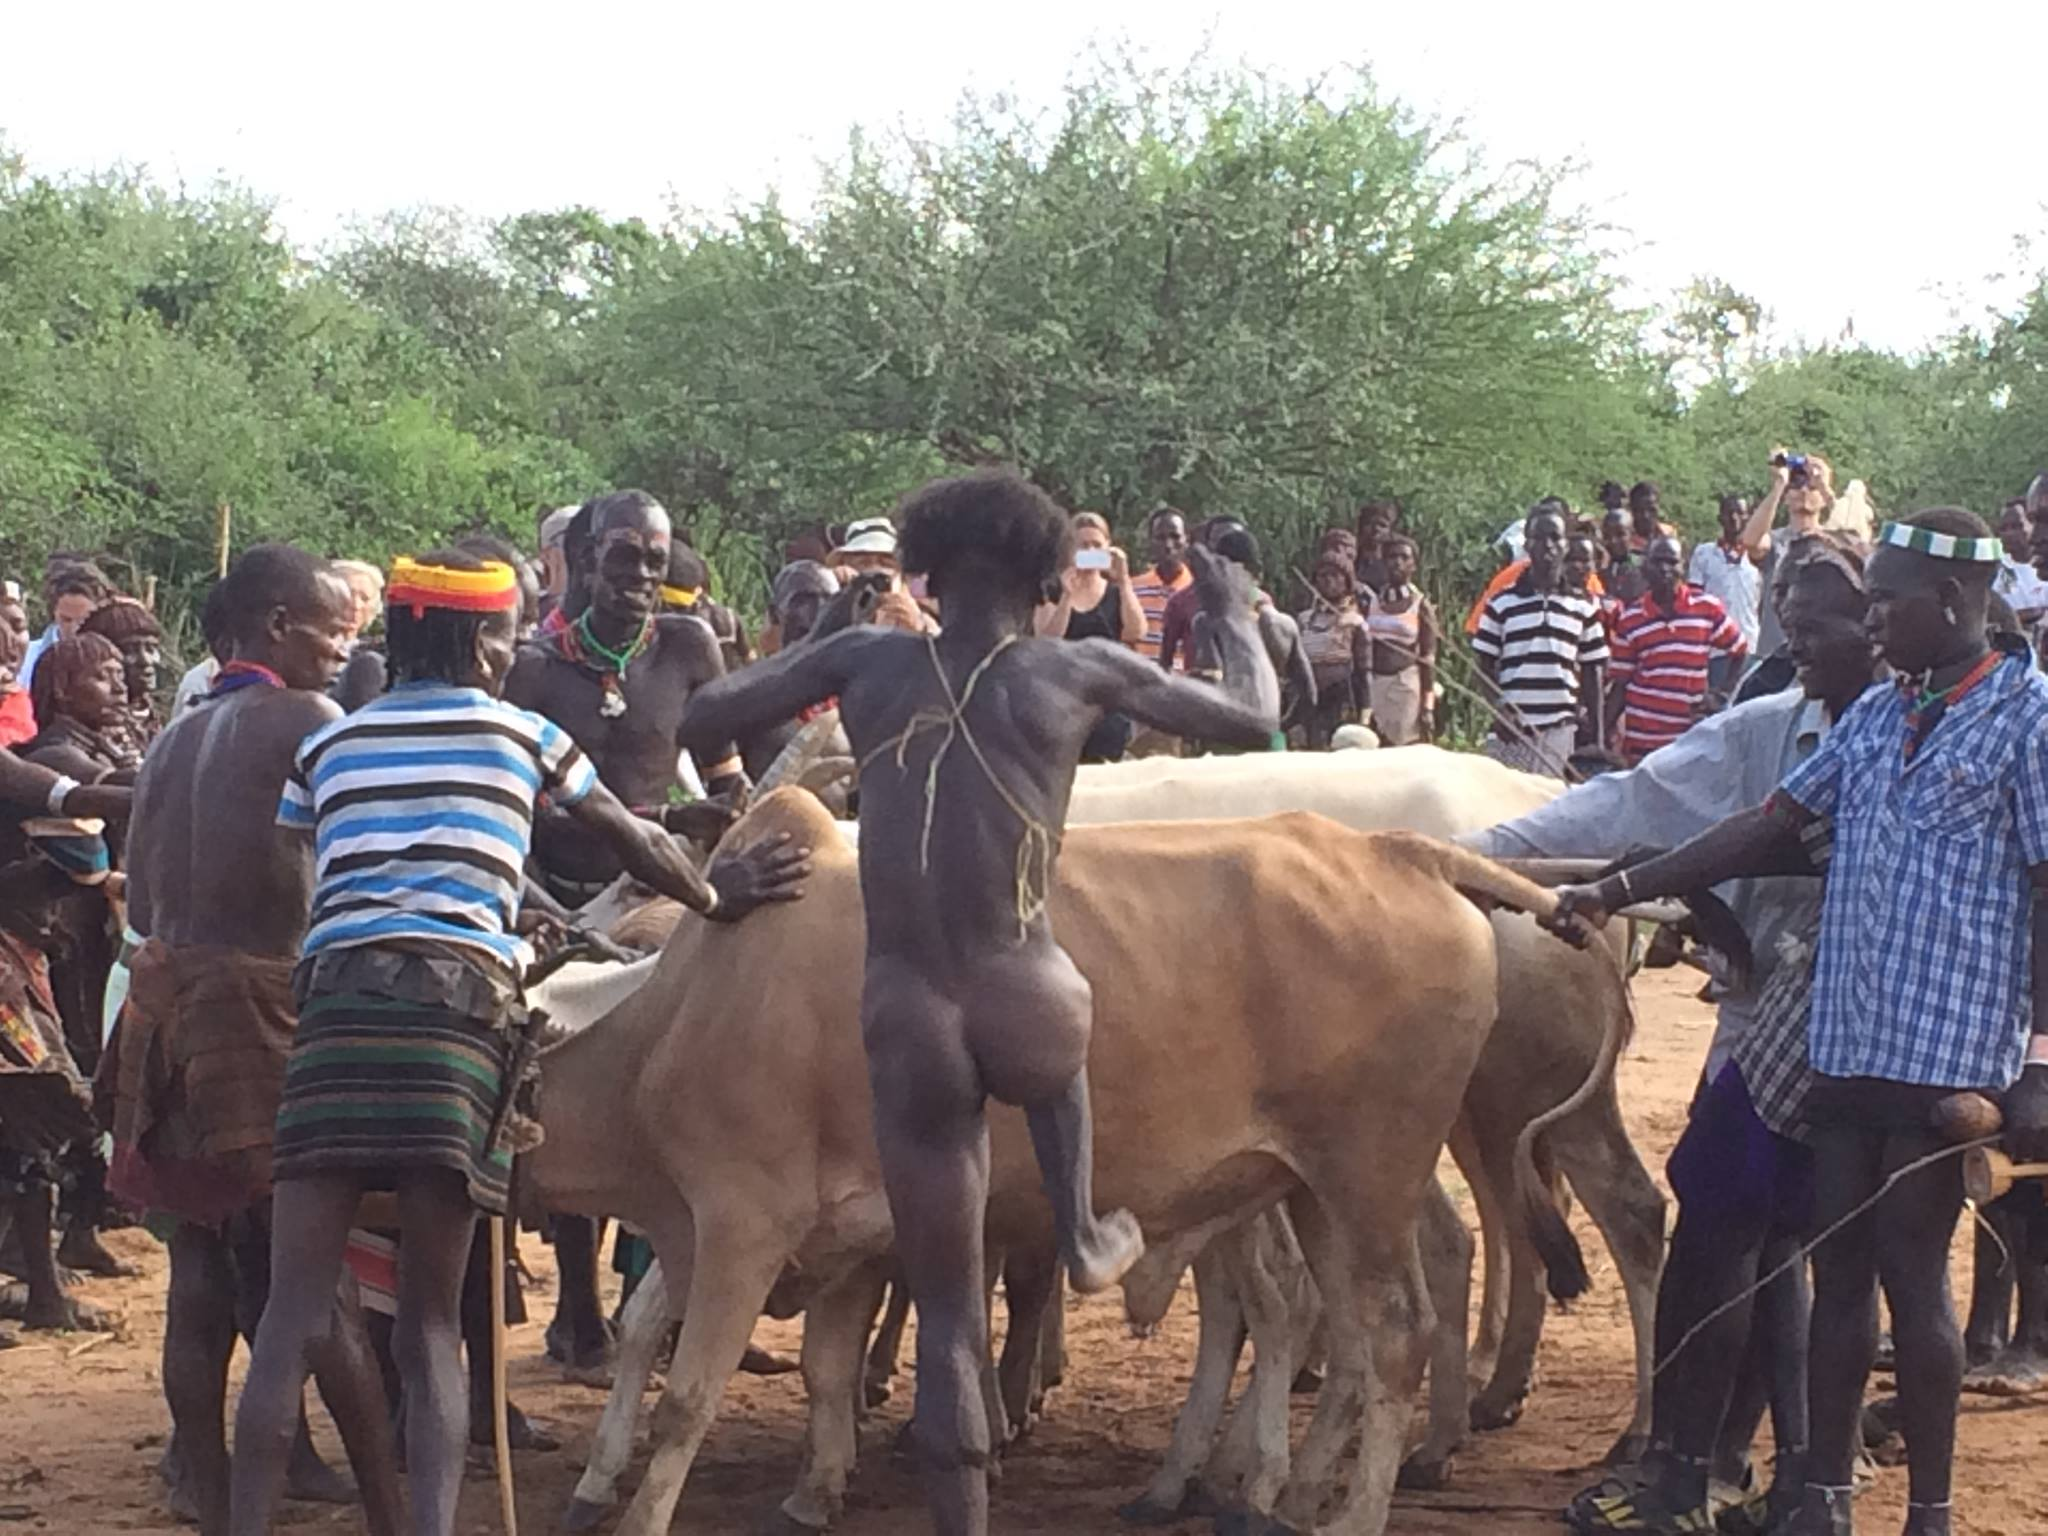 A significant event in the Hamer society is the Bull Jumping Ceremony. The rite marks a passage of men from youth to manhood.